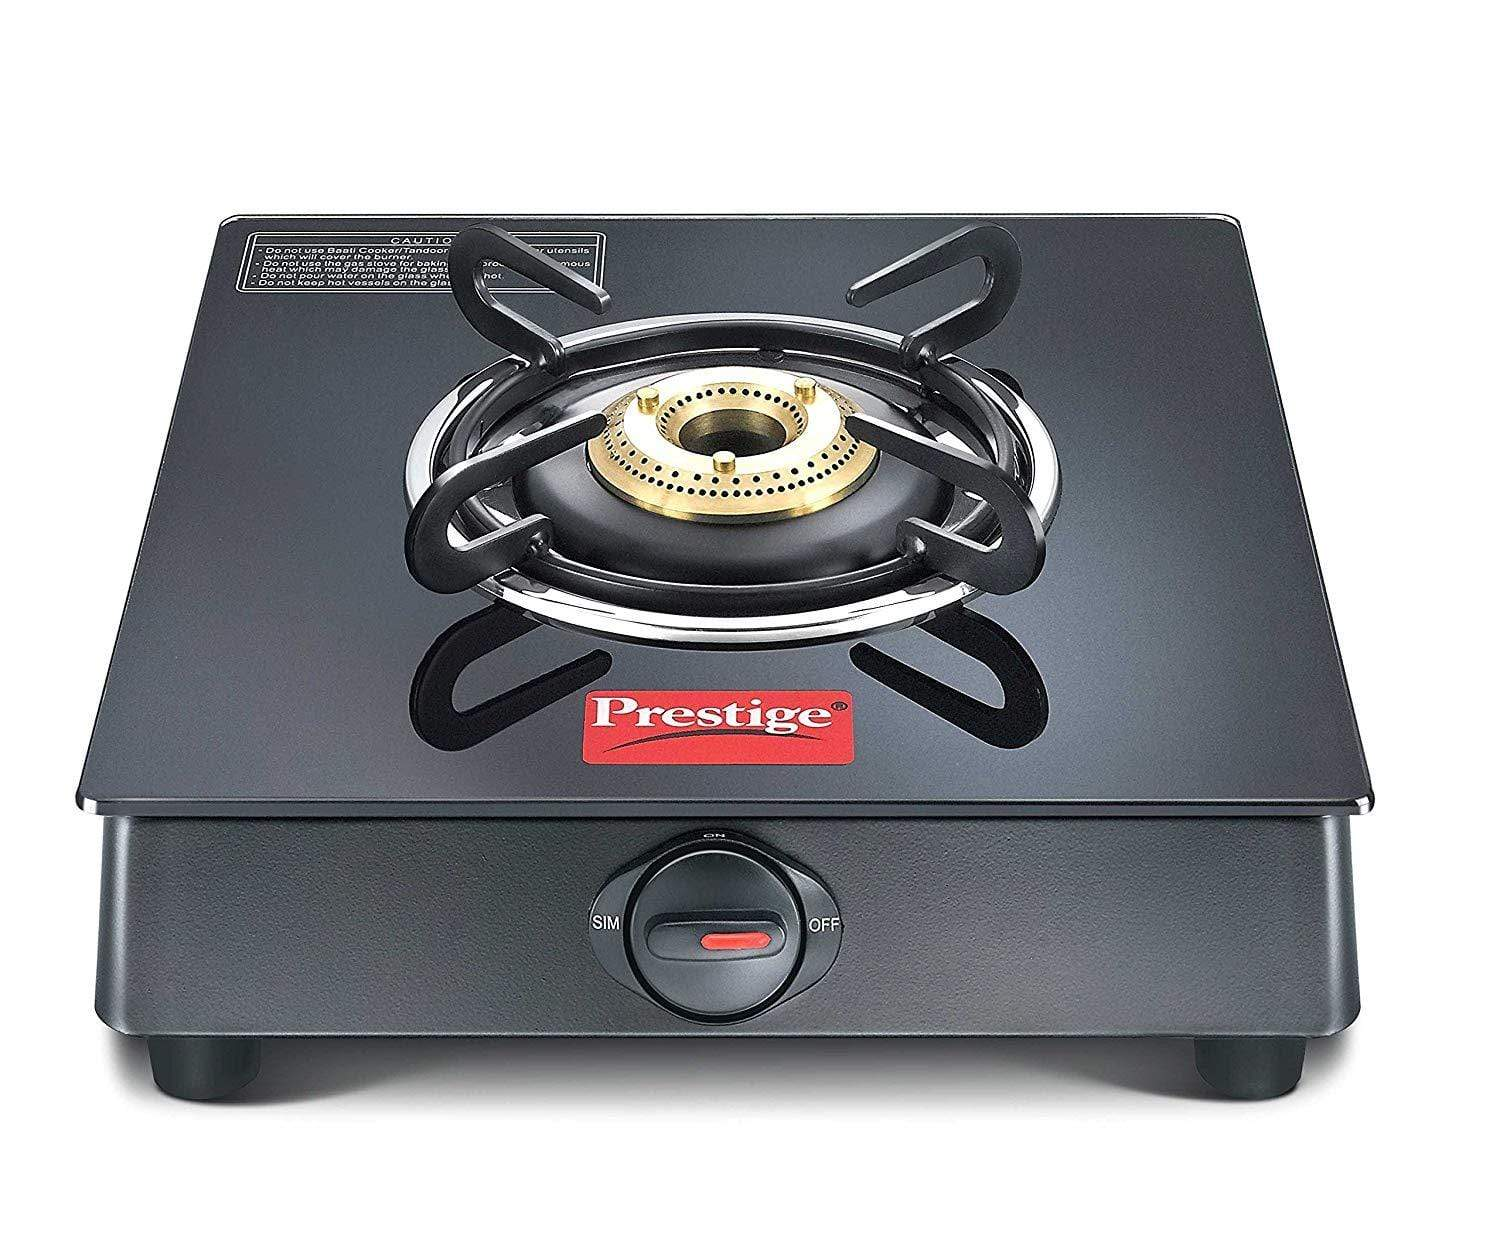 Prestige Marvel Plus Glass 1 Burner Gas Stove (Black) (ISI Approved) - KITCHEN MART